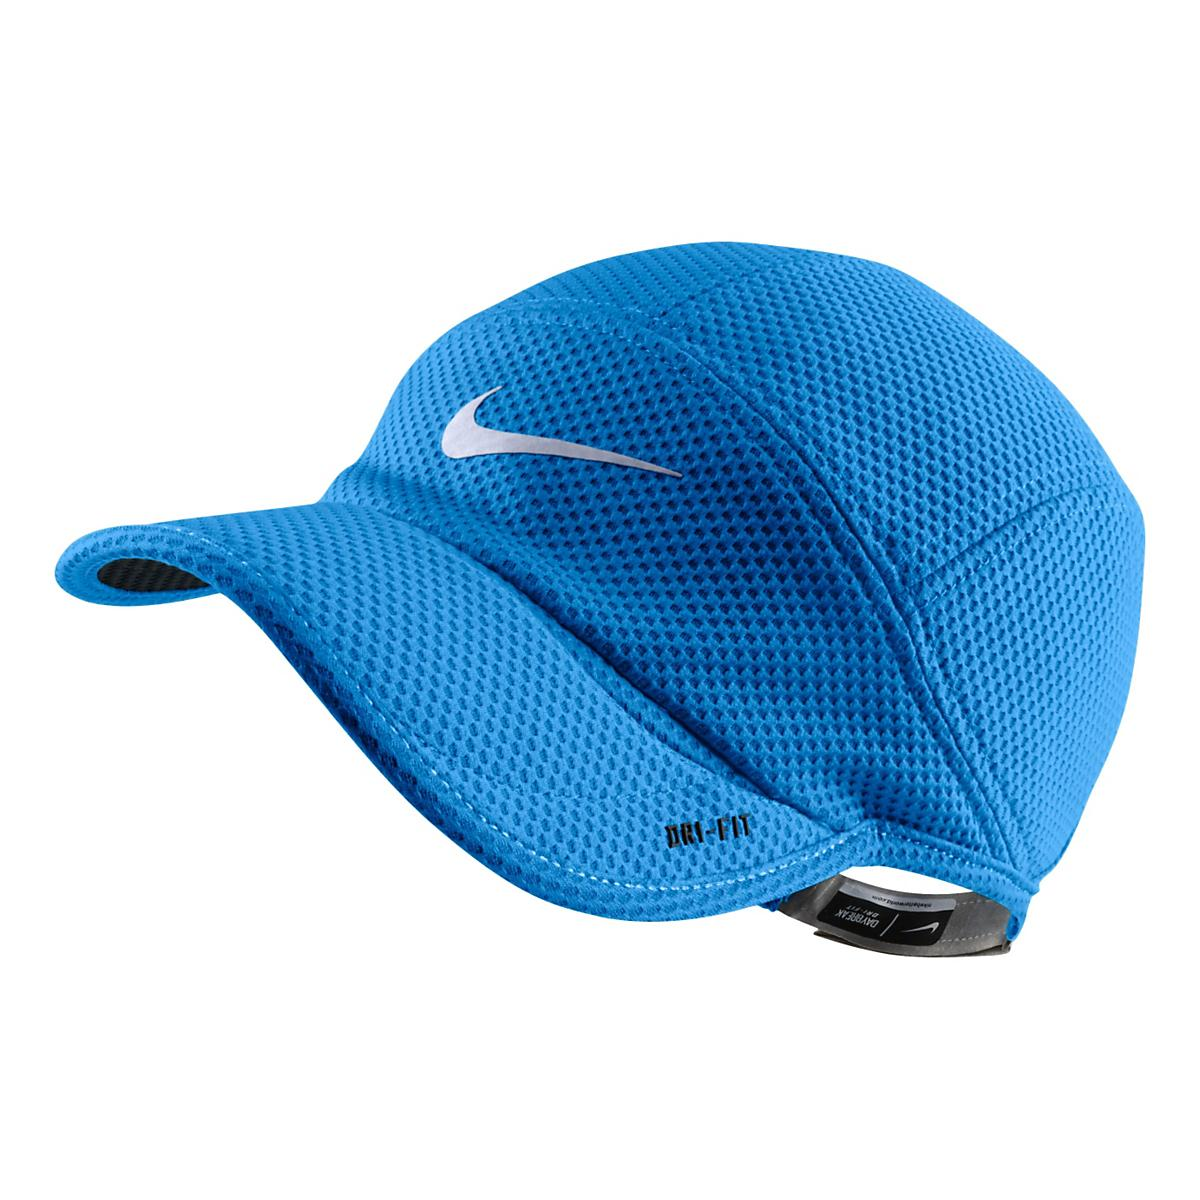 084a3638334 Nike TW Mesh Daybreak Cap Headwear at Road Runner Sports